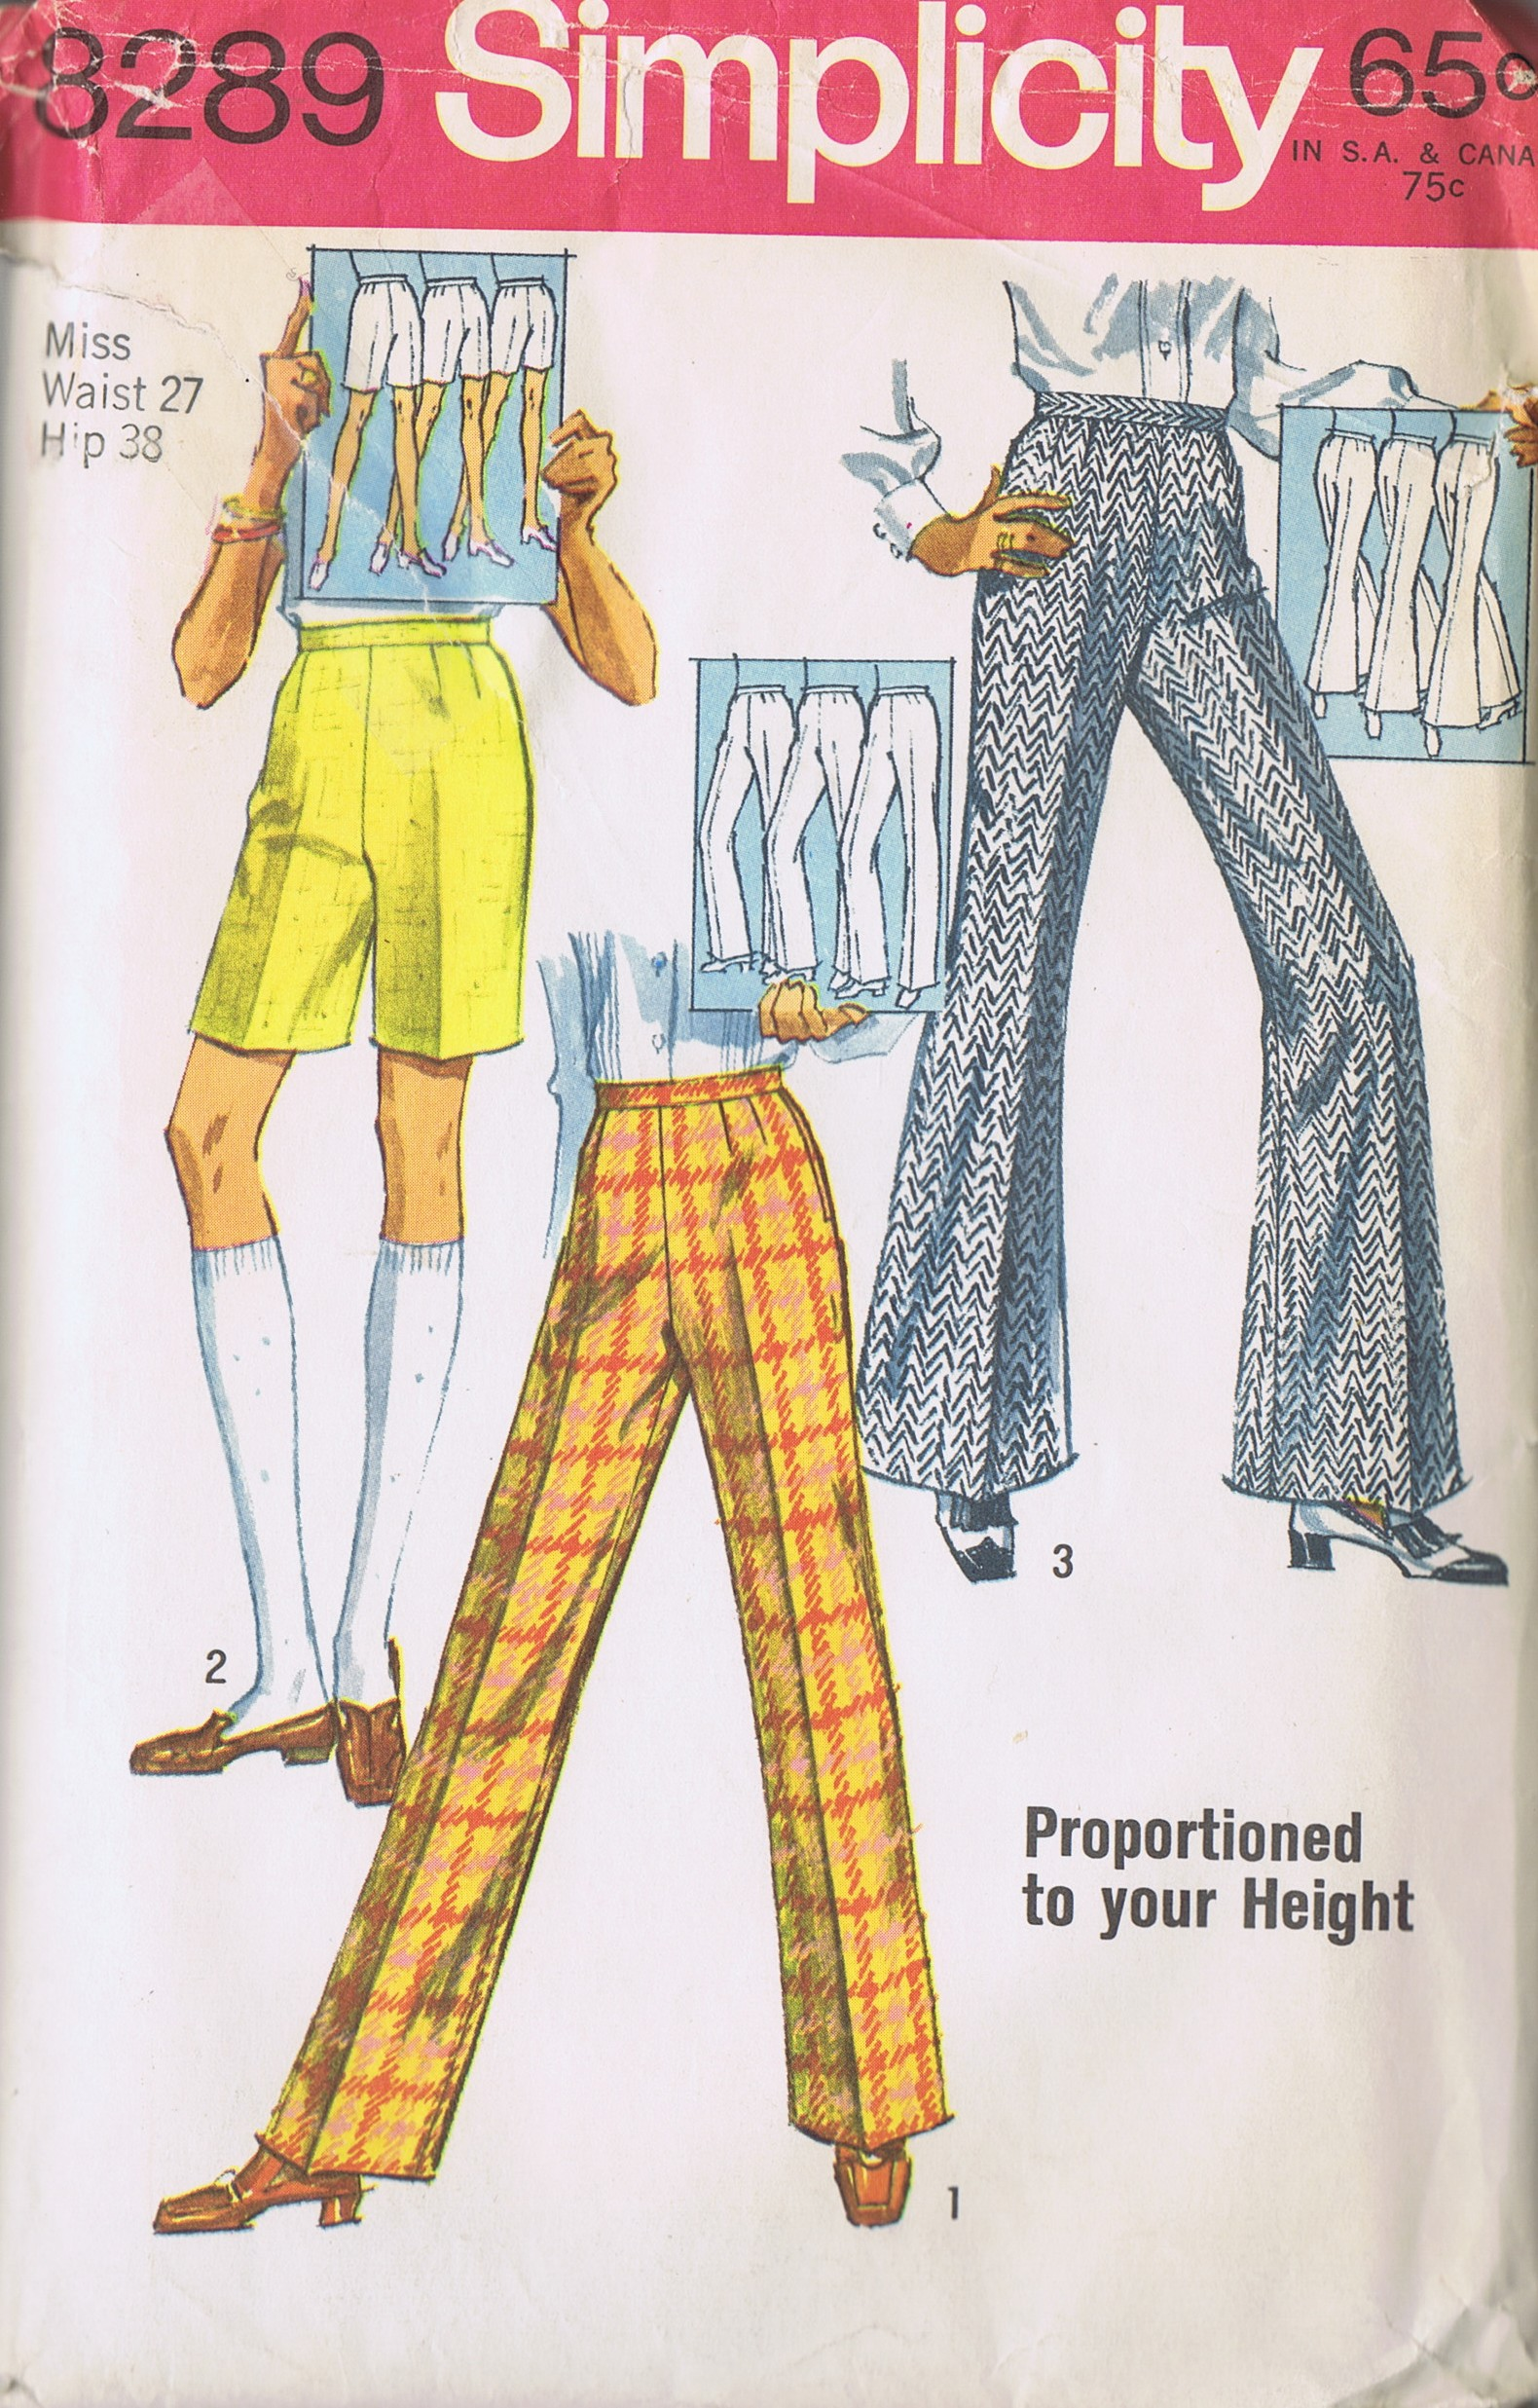 Vintage Pants Shorts 60s Sewing Pattern 8289 Simplicity HIP 38 Inches UNCUT